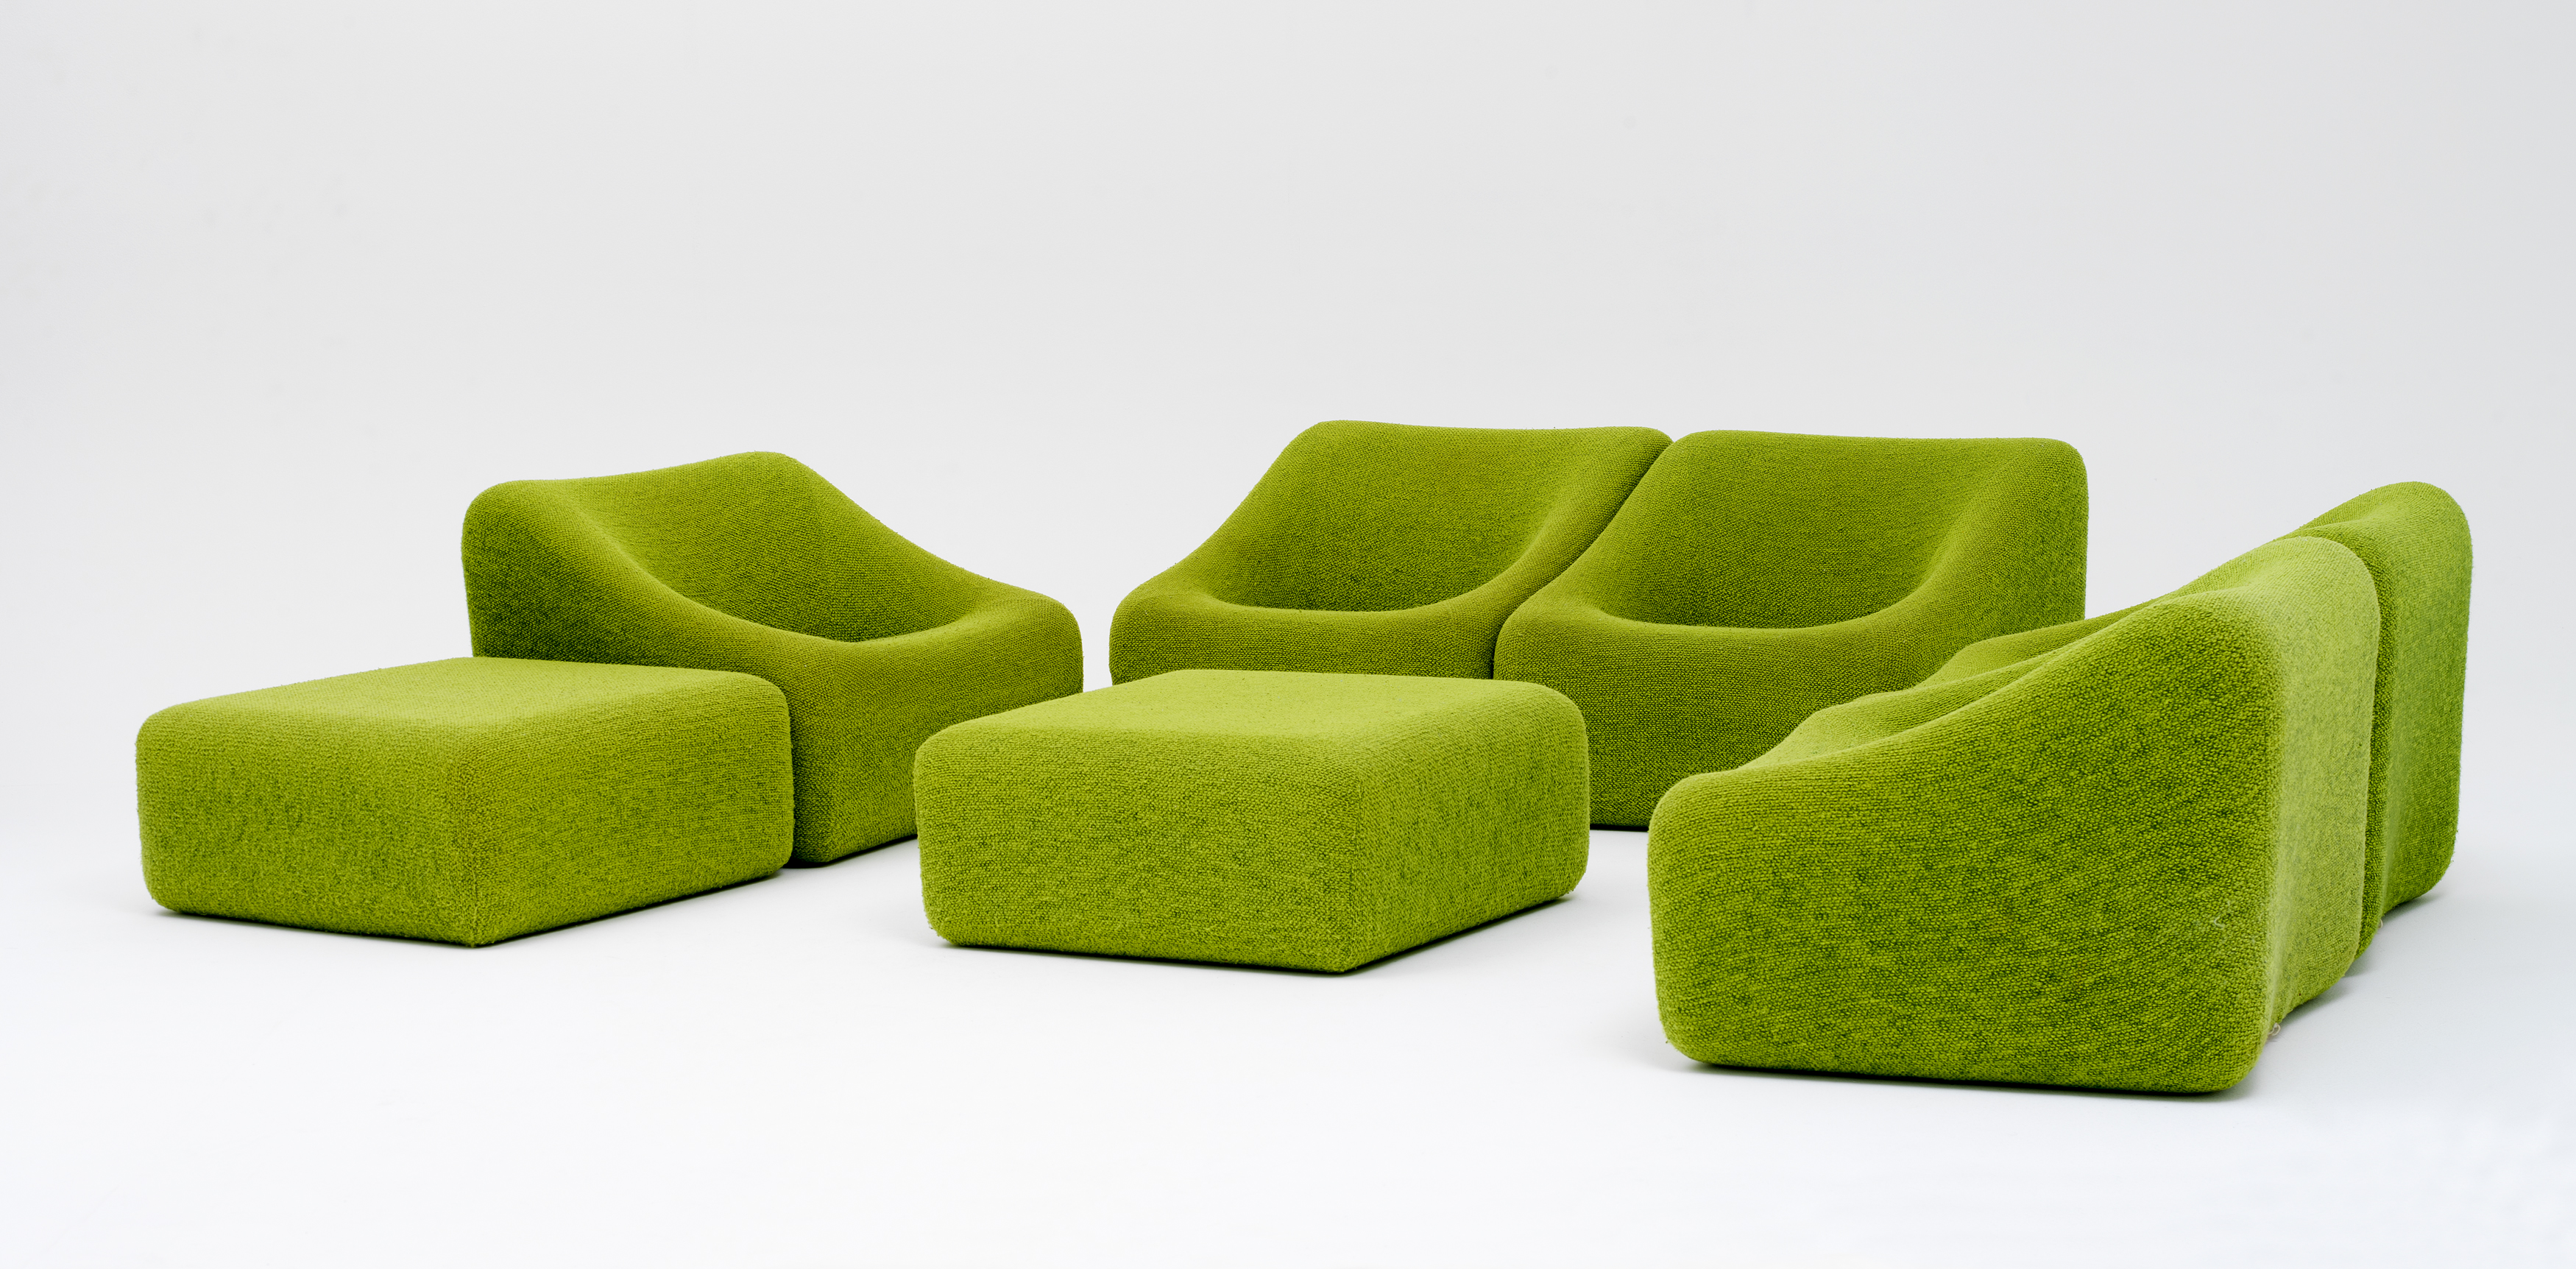 Numero IV Lounge suite, designed by Grant and Mary Featherston, made by Uniroyal Pty Ltd, Melbourne, Victoria, Australia, 1973-1974